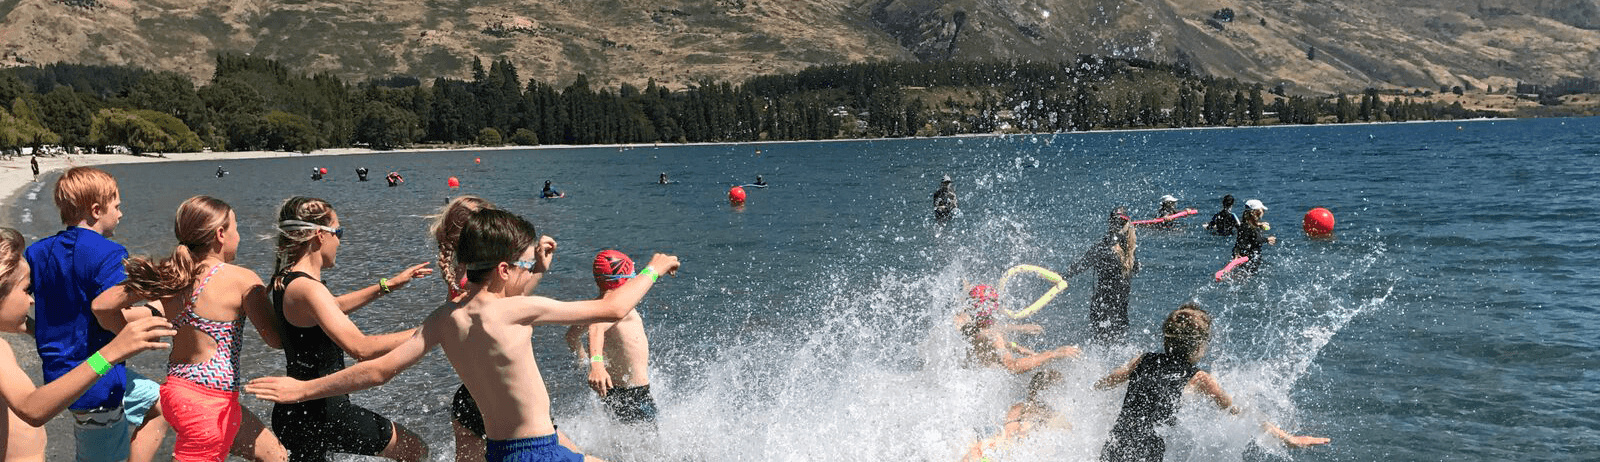 Tri-Wanaka-Site-Junior-Challenge-Wanaka-NZ